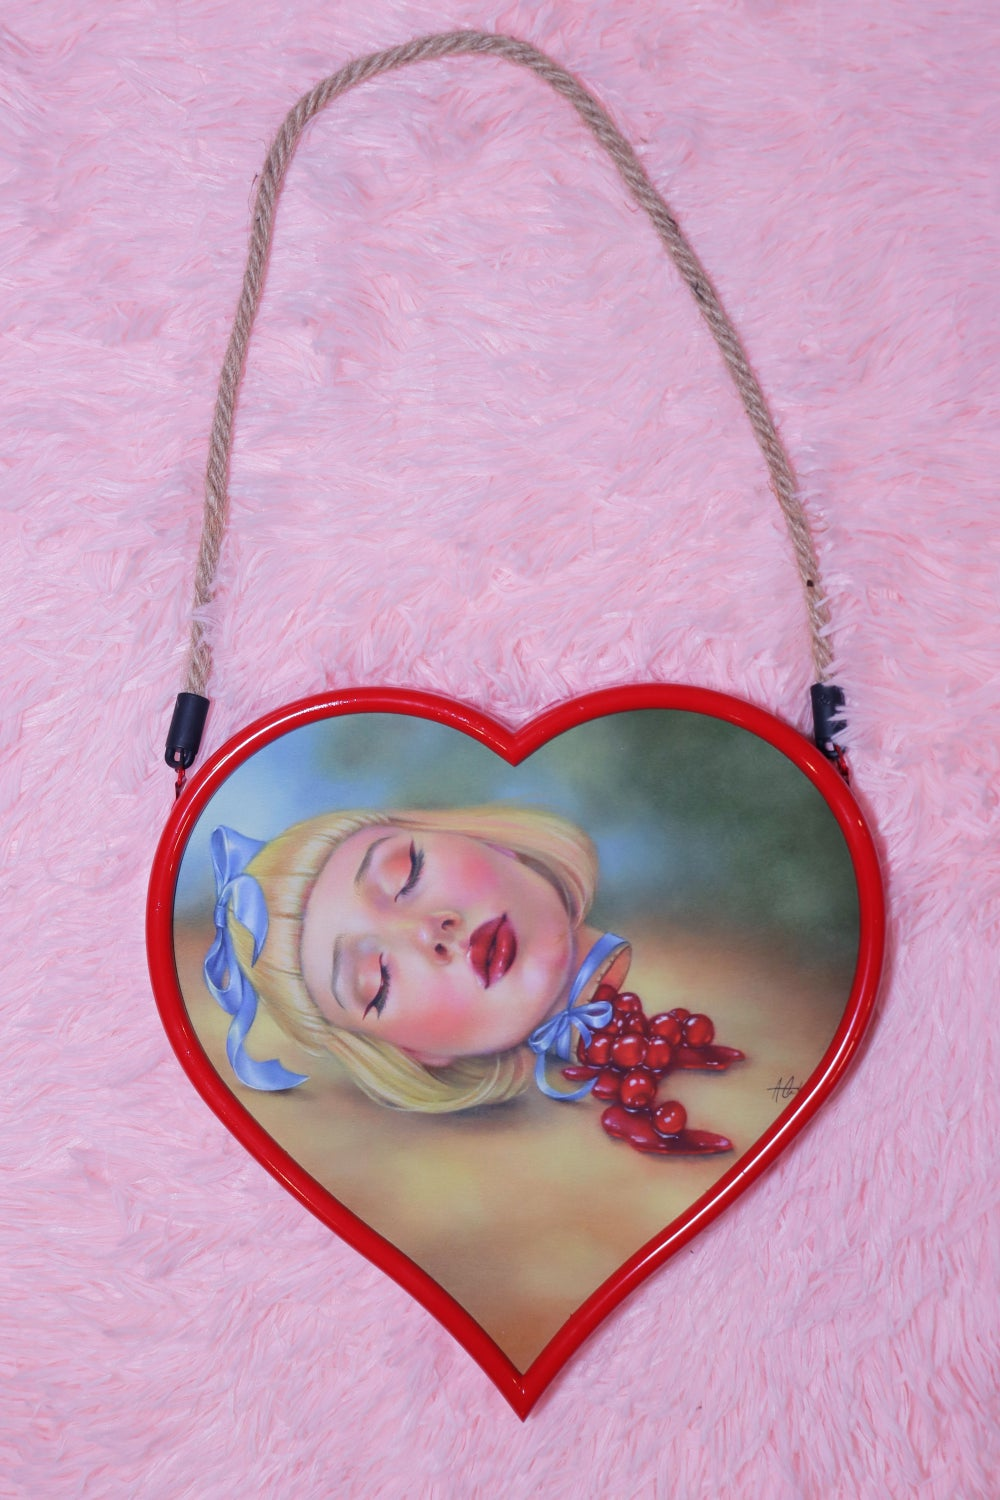 Image of Cherry Pie Girl Limited Edition Framed Giclee Print - MEDIUM